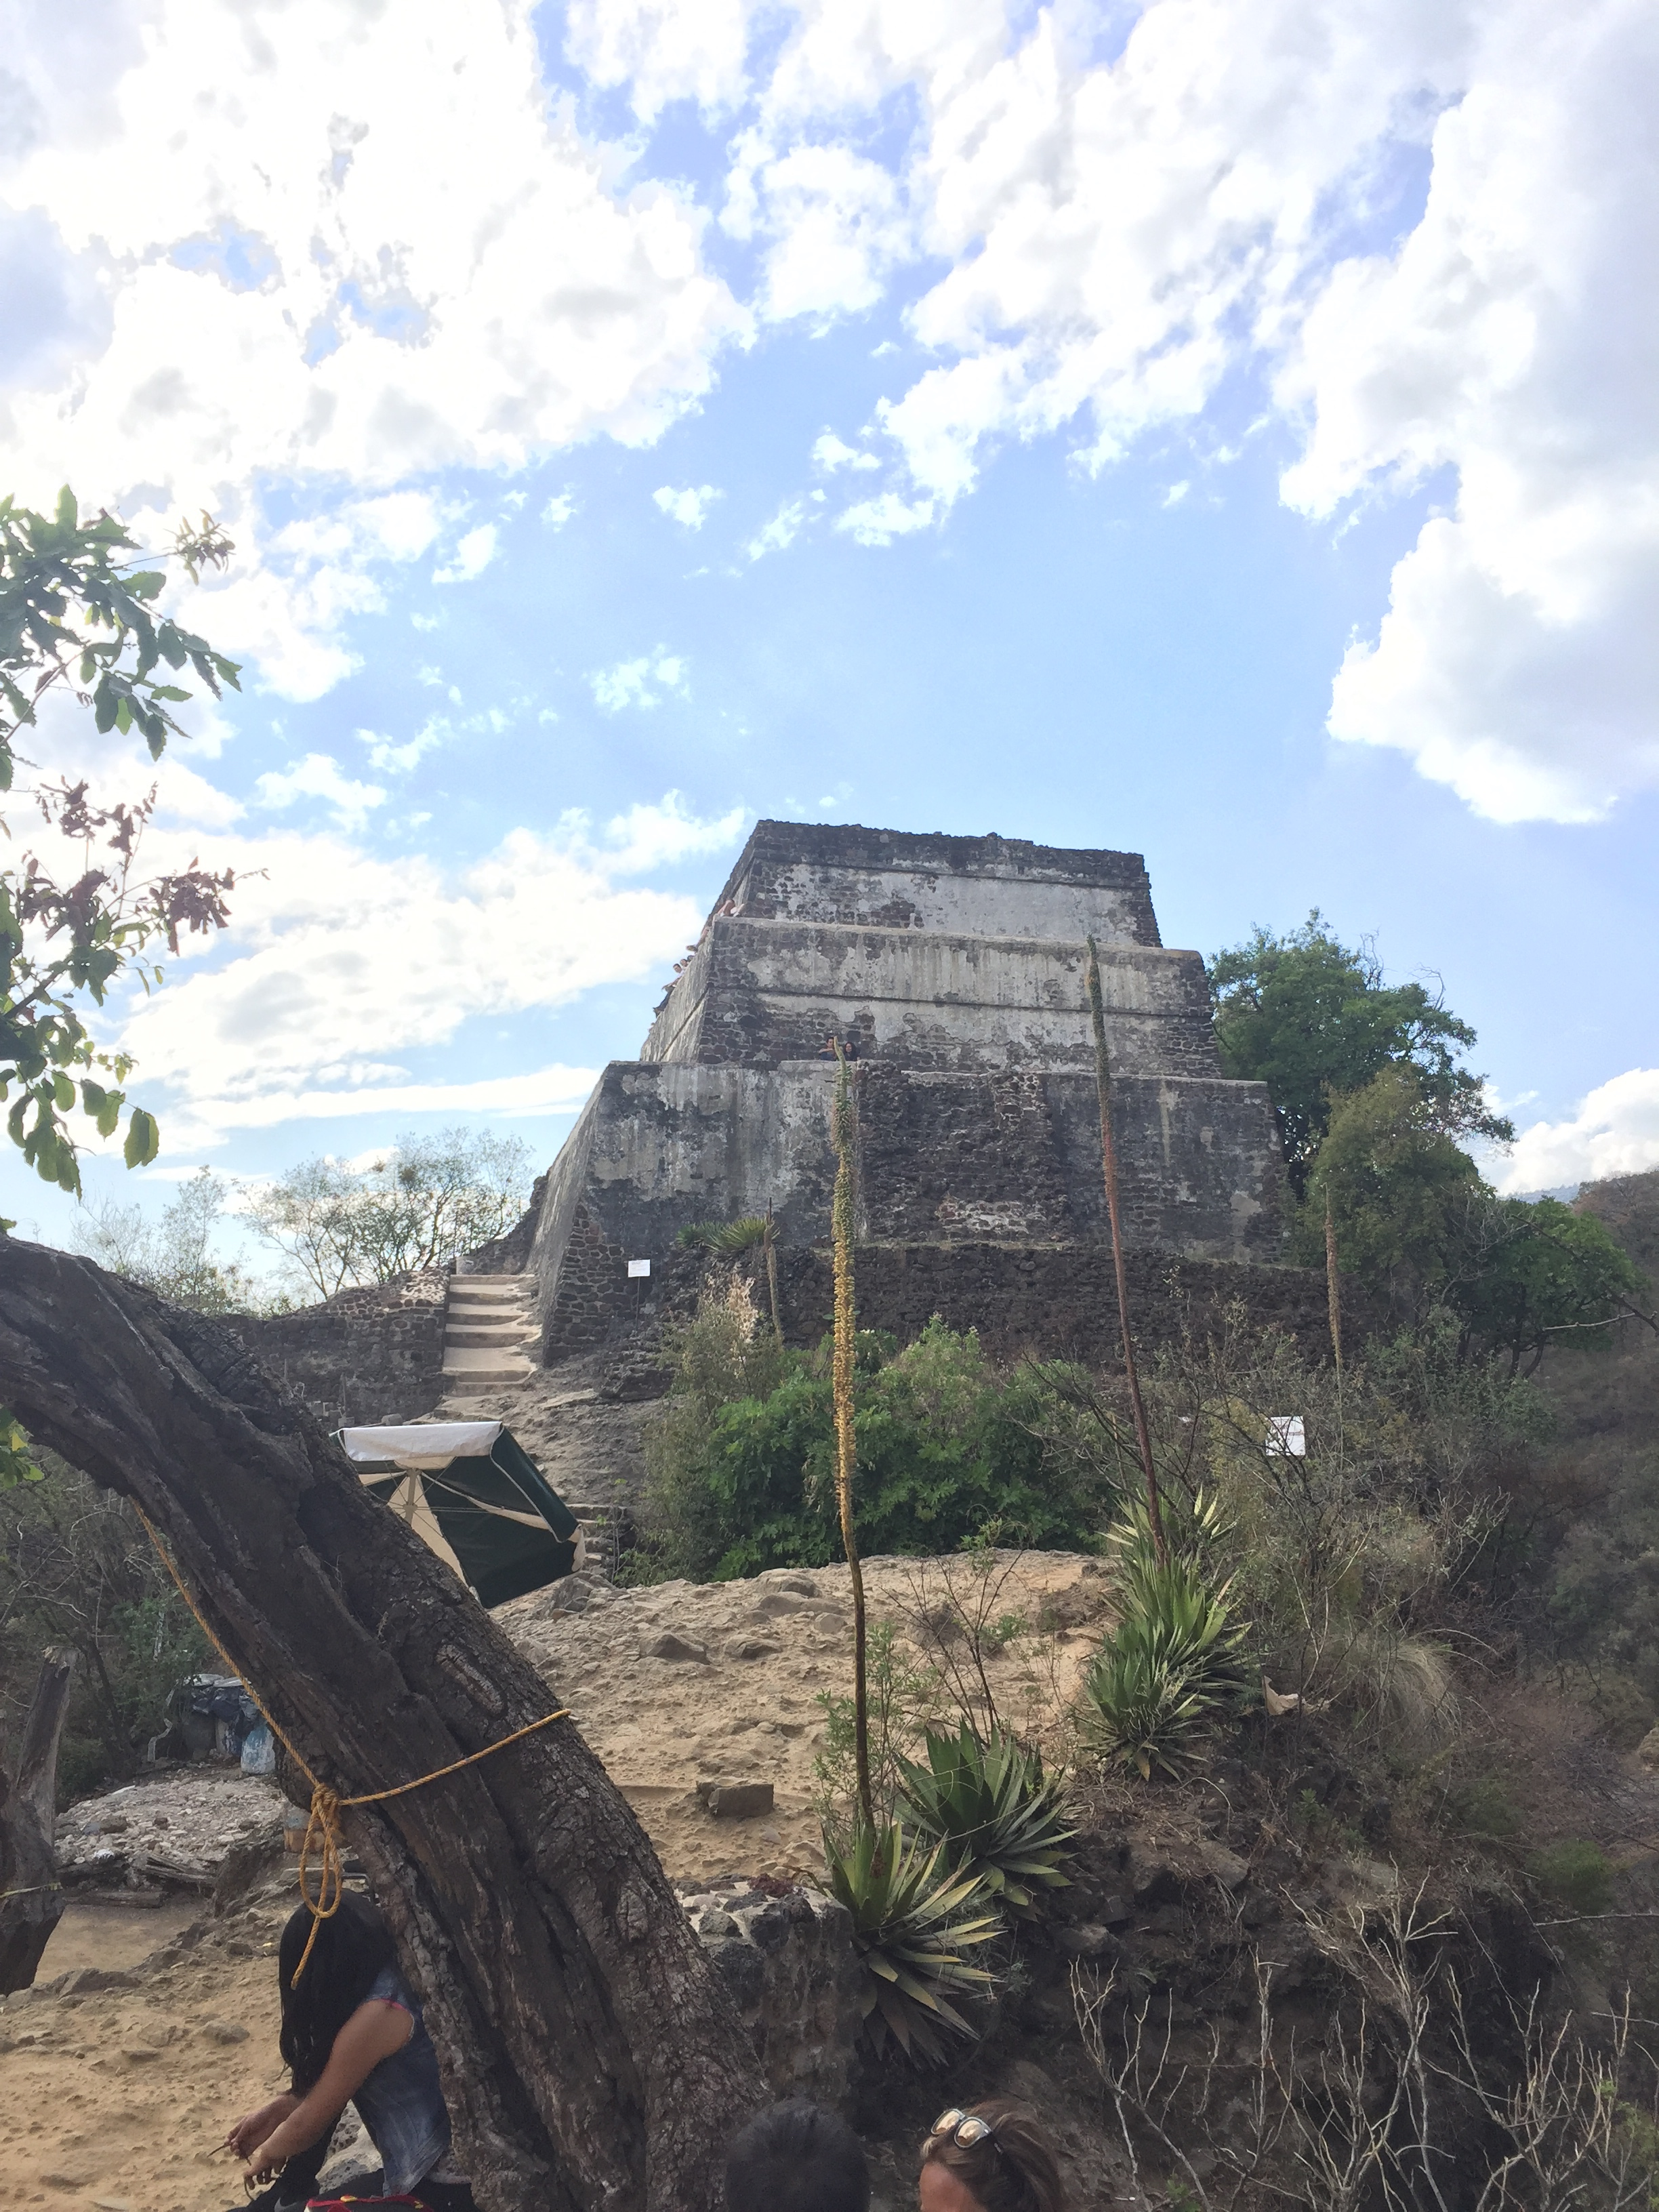 Az Aztec pyramid on a hill over Tepoztlan, Mexico.